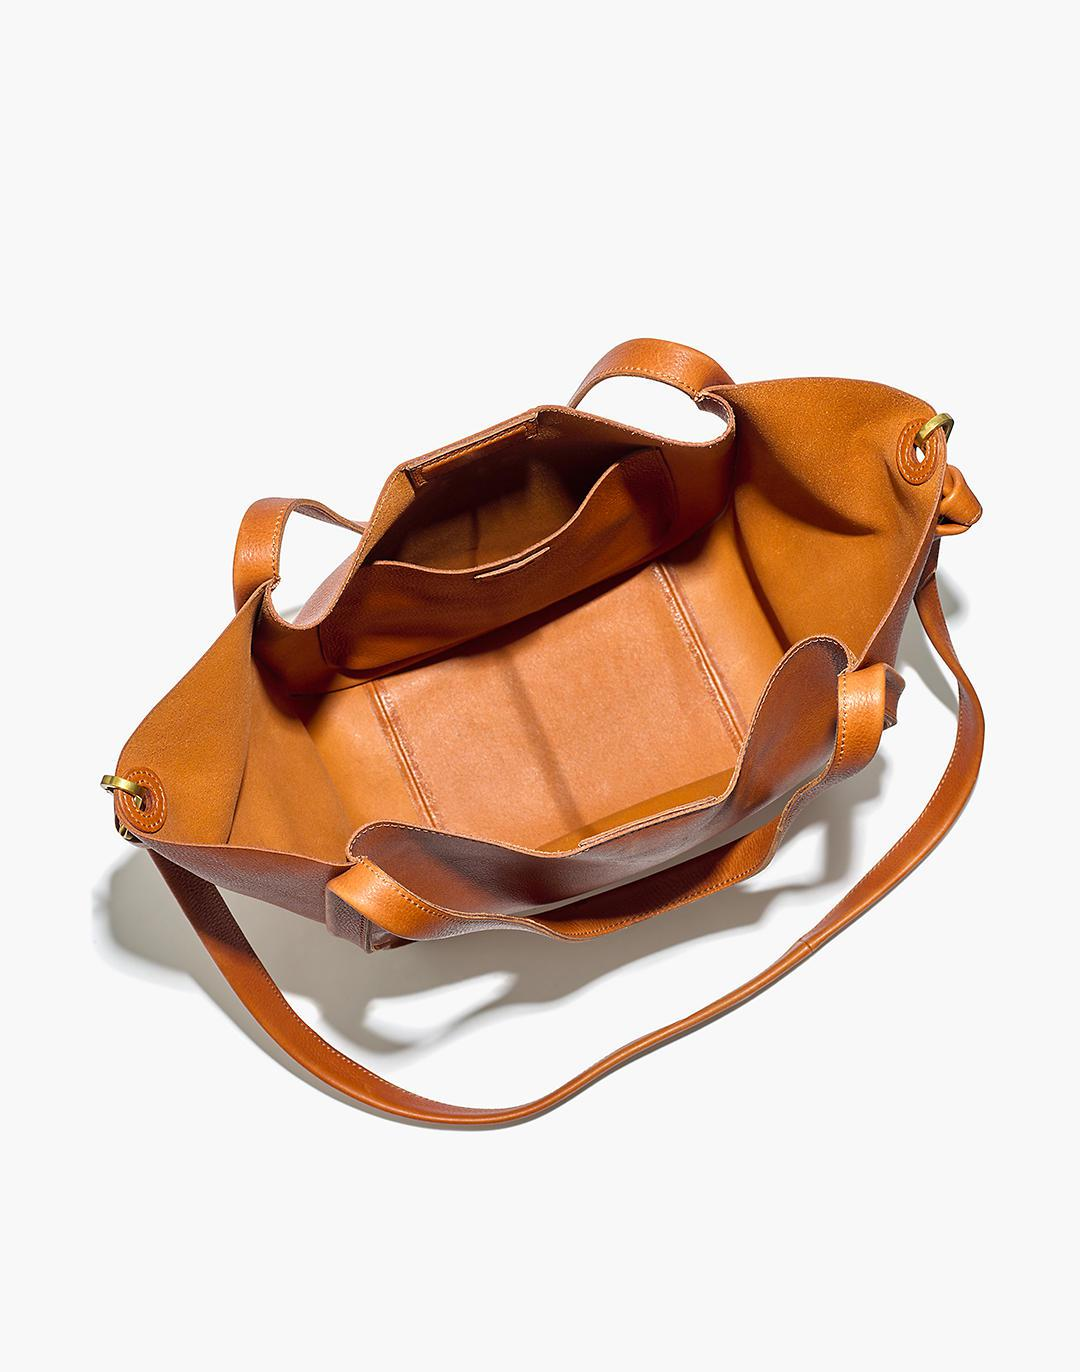 The Sydney Tote 1